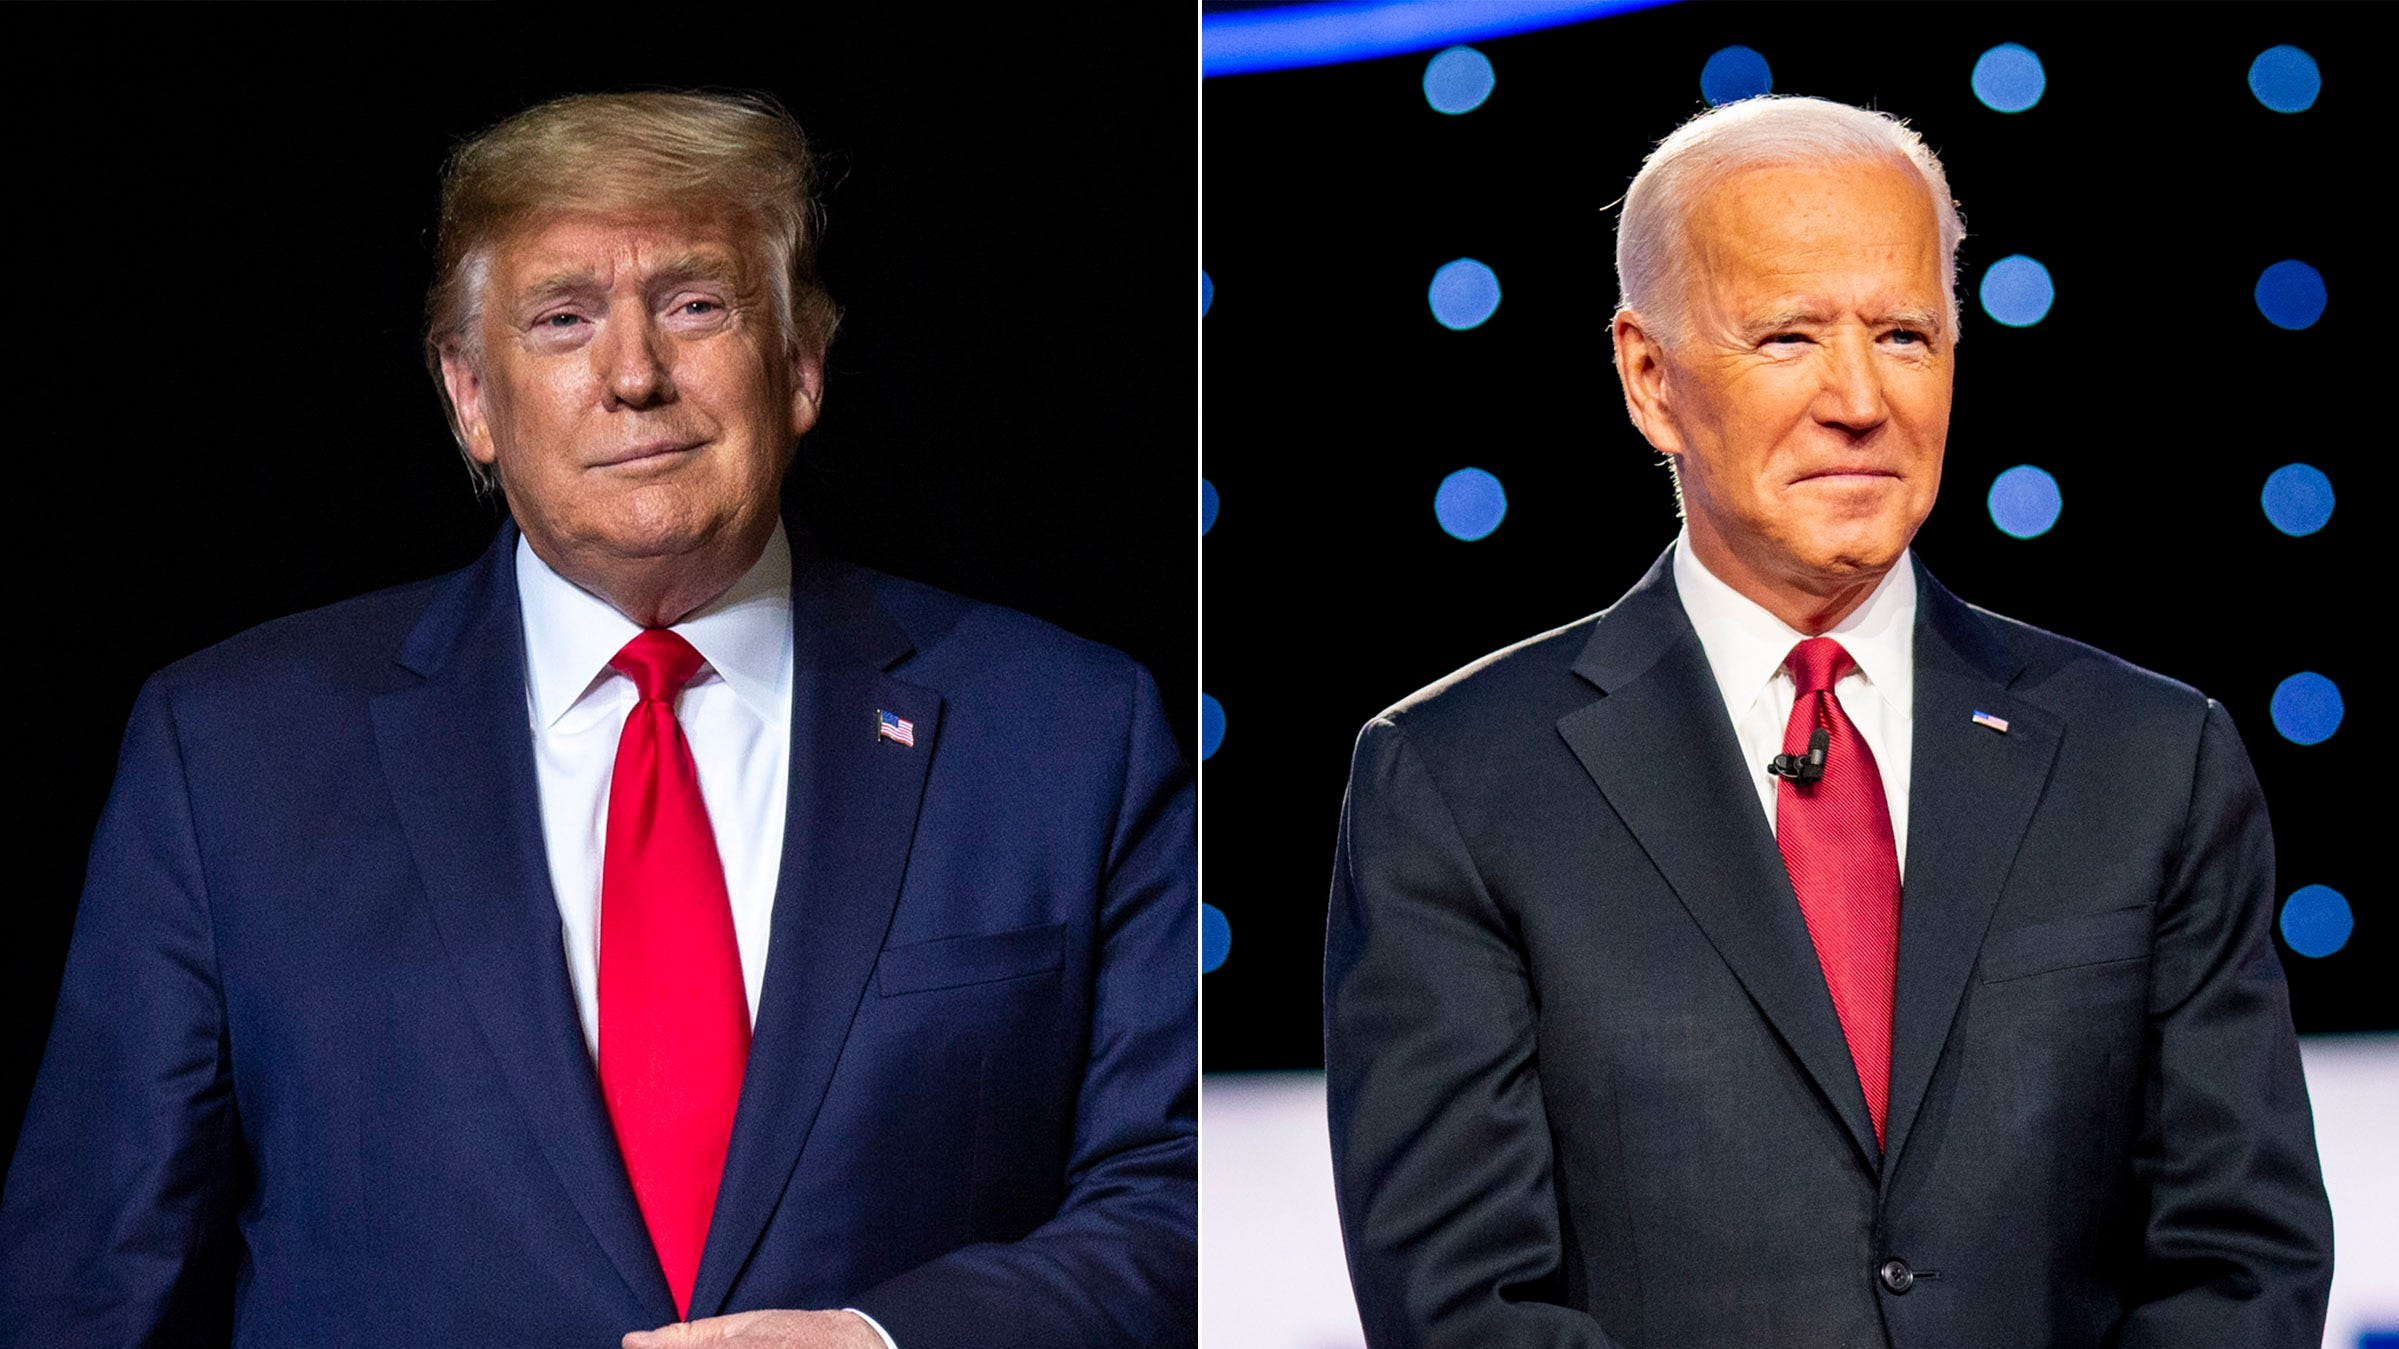 U.S Elections 2020: Trump and Biden's Voting Battle Continues